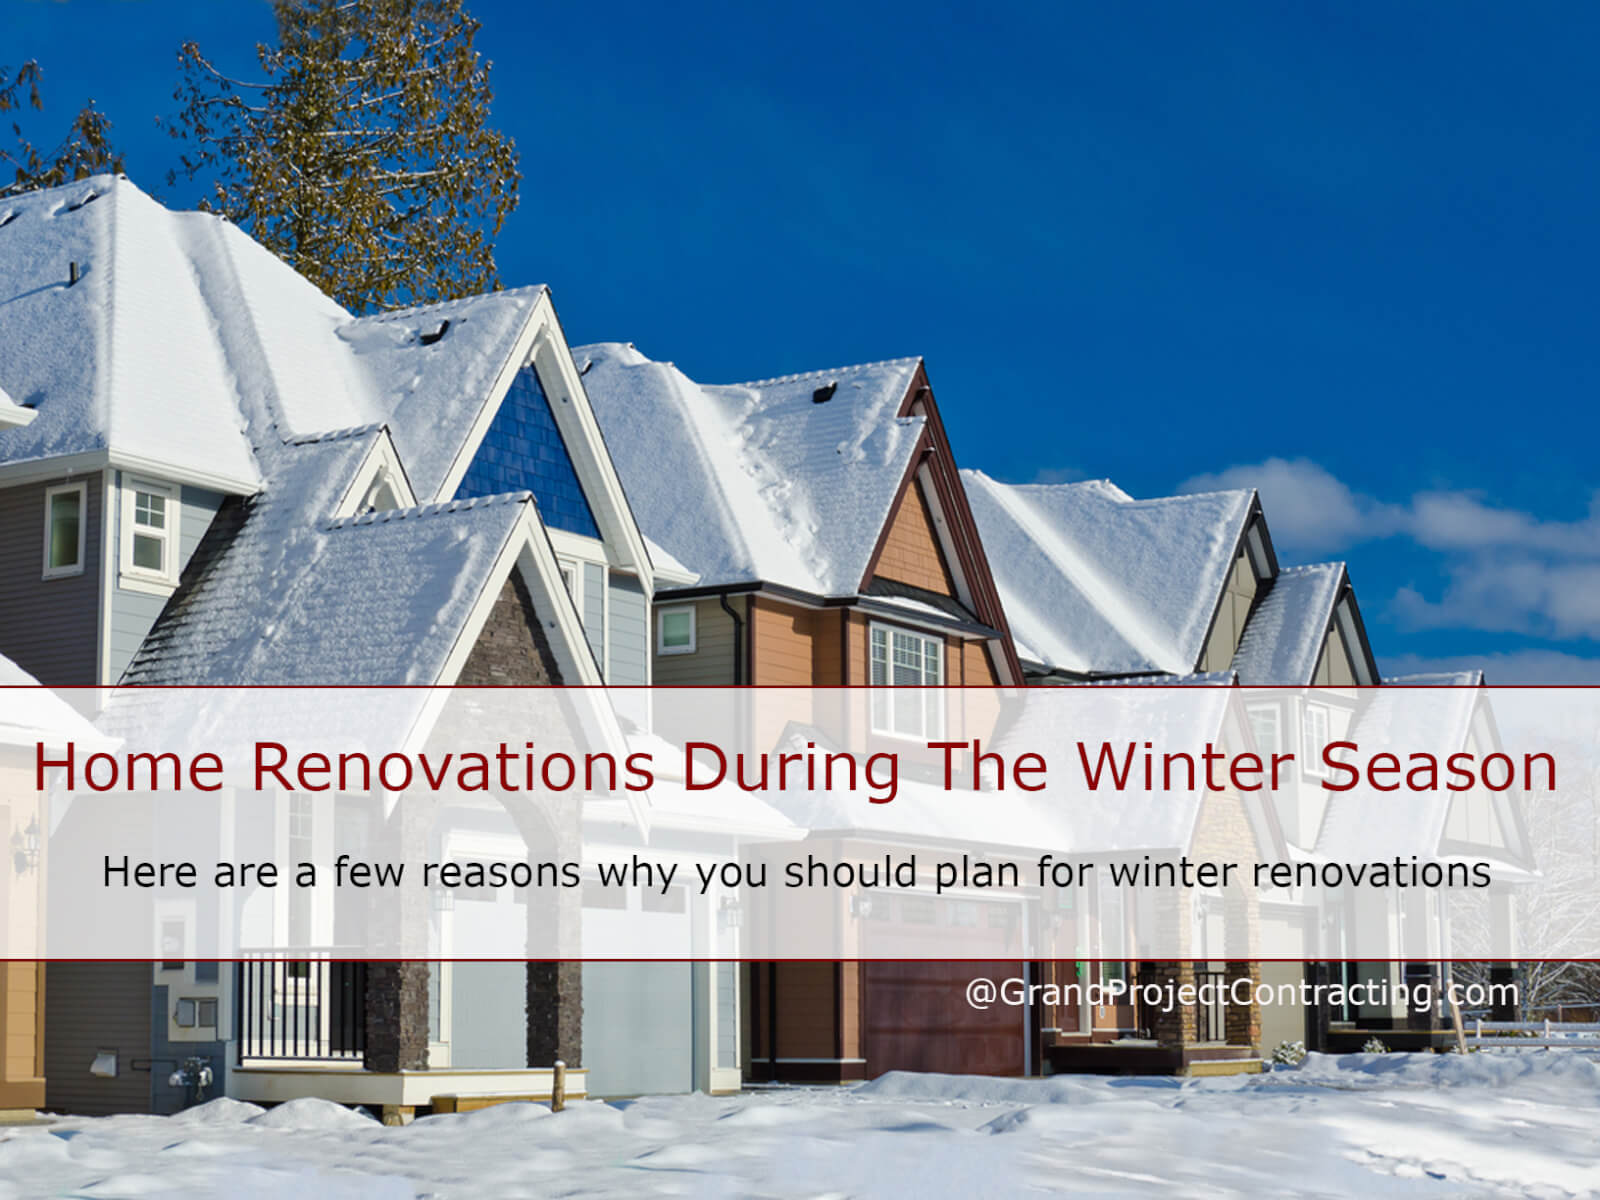 Home Renovations During Winter